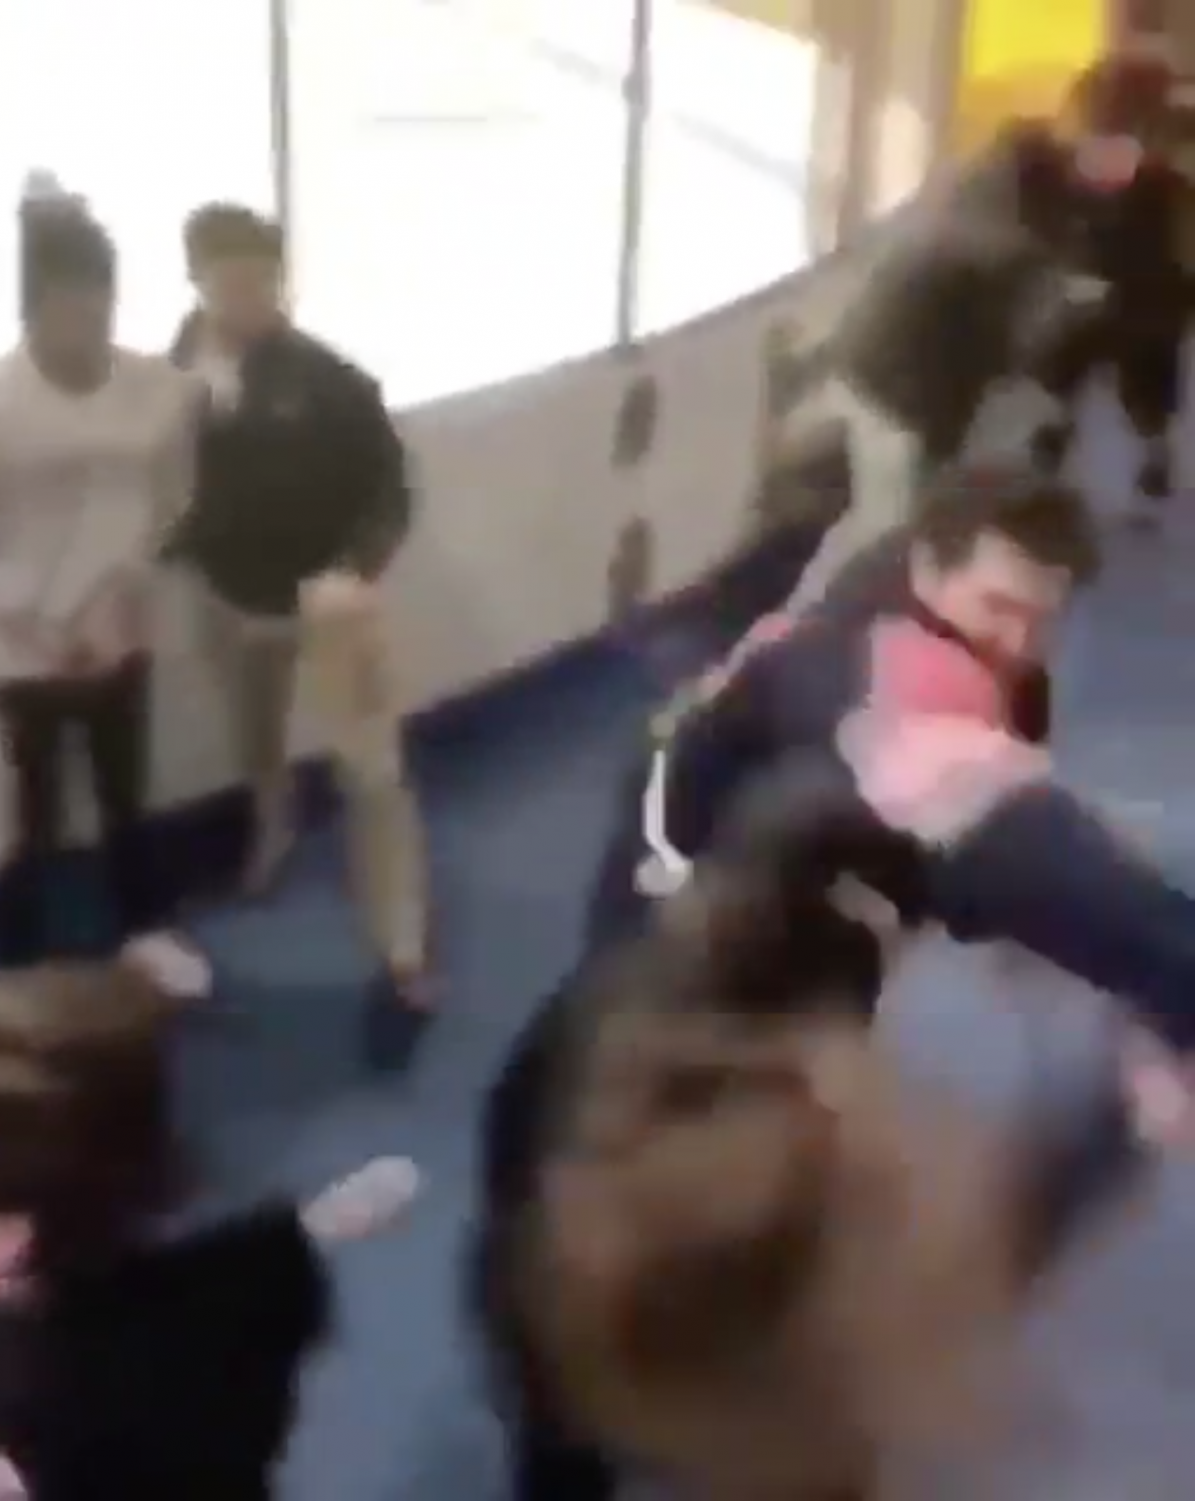 Screenshot from a video taken during the fight. The fight broke out immediately after the game when a fan insulted a Syracuse player.